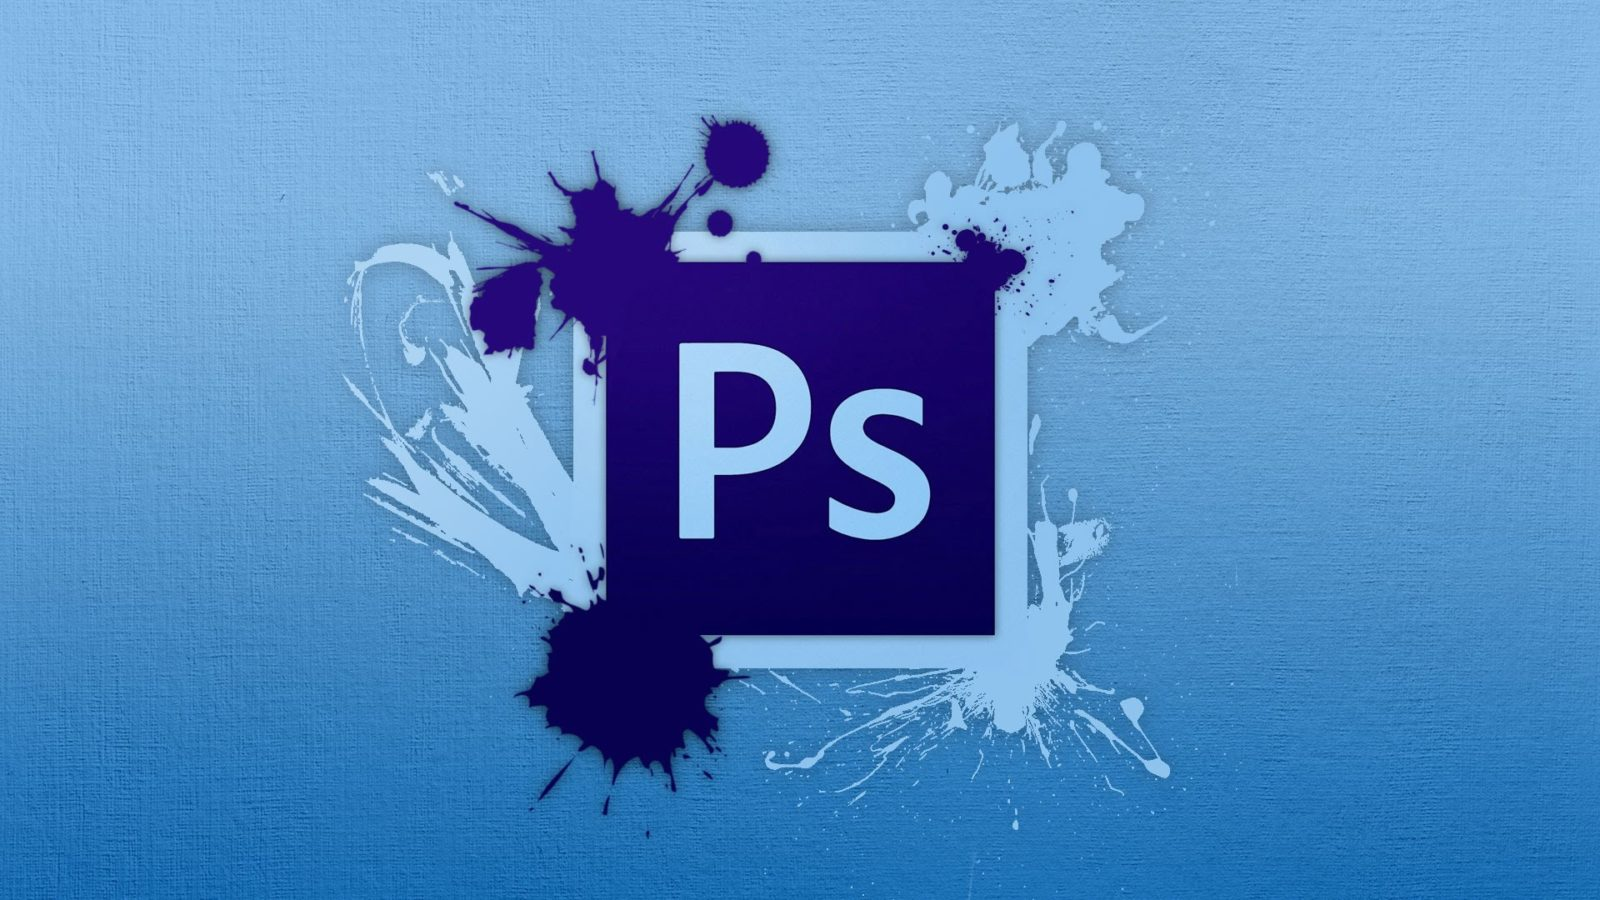 Despre Photoshop